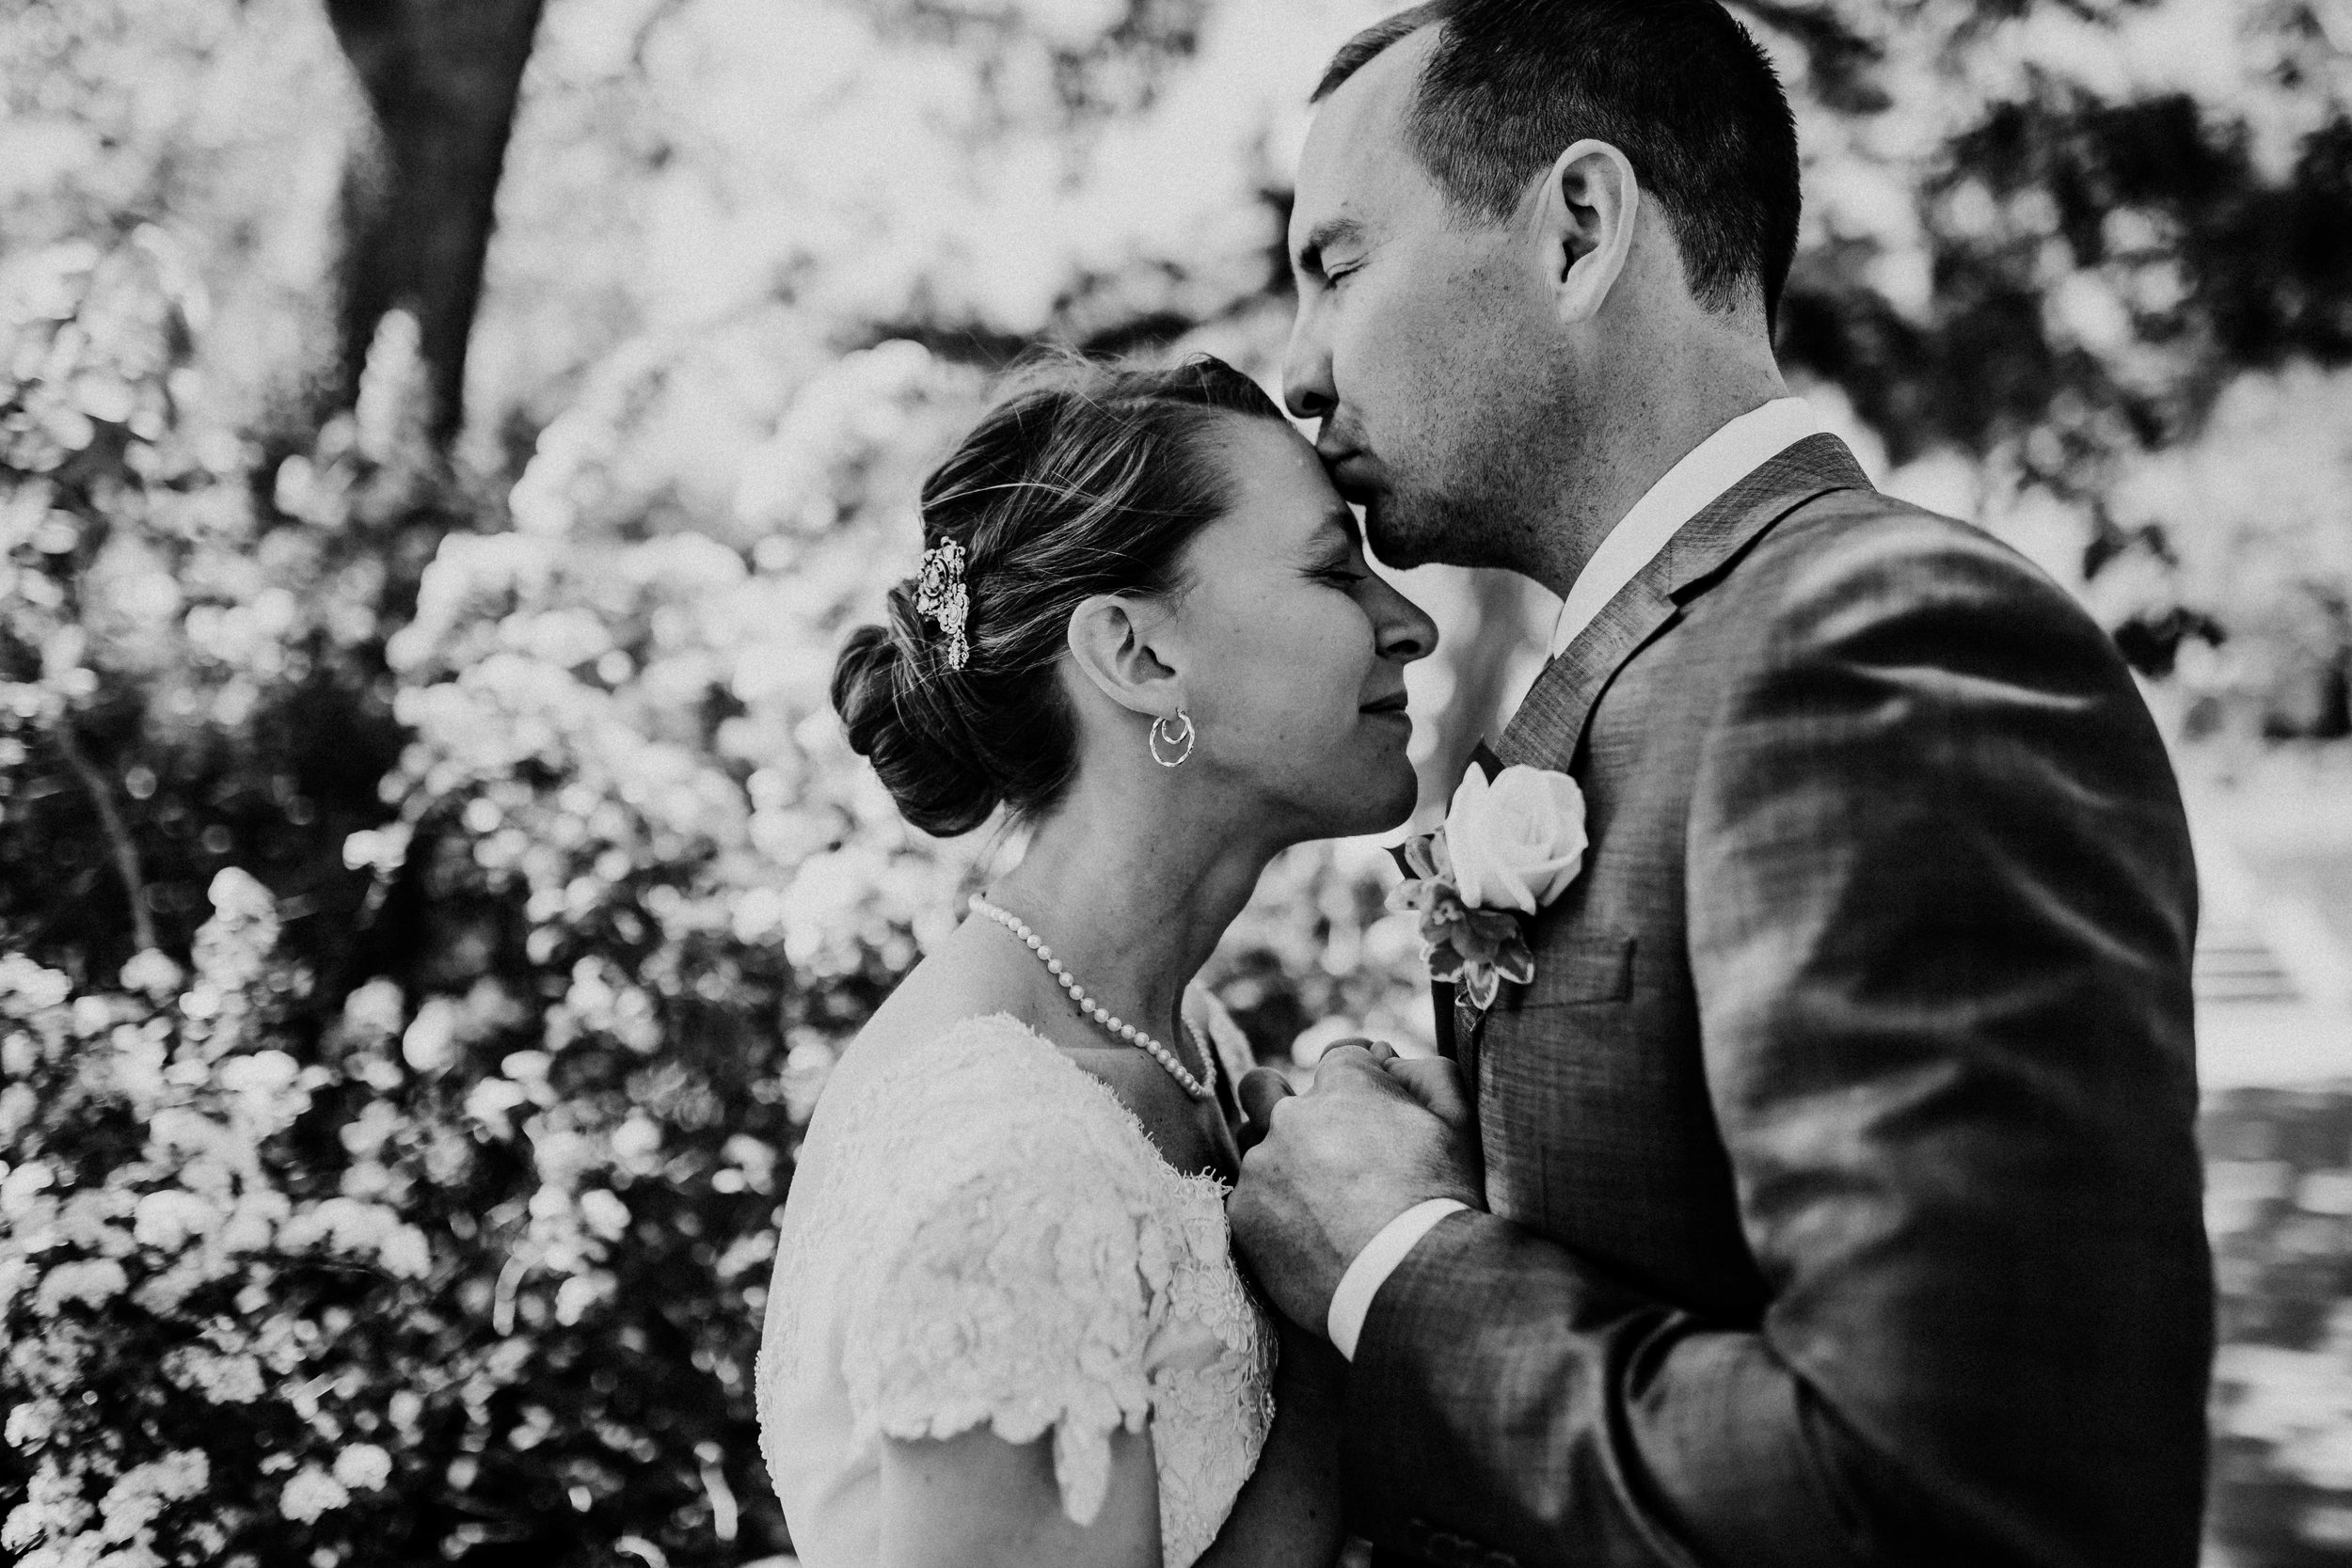 Bert & Lauren's North Kansas City Spring Wedding | Hannahill Photography | Raleigh Durham Photographer | North Carolina Wedding Photography | Family Photographer | Wedding photographer | Groom kisses bride on the forehead in black and white portrait